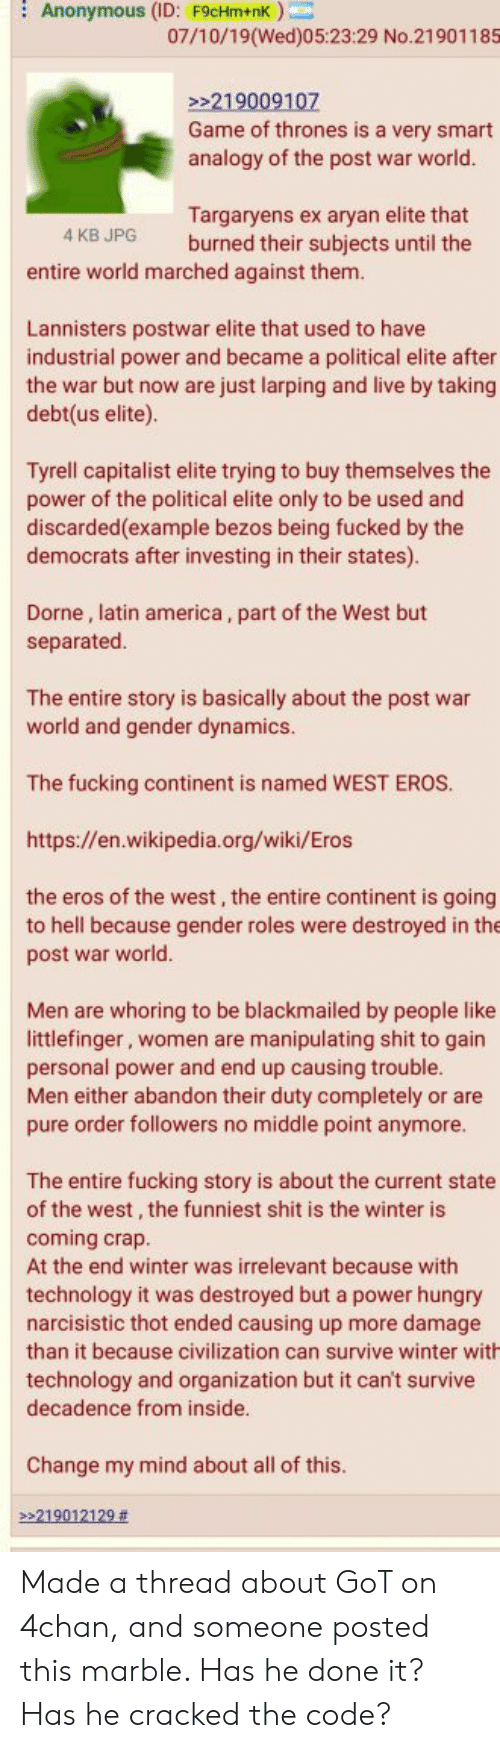 4chan, America, and Fucking: Anonymous (ID: F9cHm+nk)  07/10/19(Wed)05:23:29 No.21901185  219009107  Game of thrones is a very smart  analogy of the post war world.  Targaryens ex aryan elite that  burned their subjects until the  4 KB JPG  entire world marched against them.  Lannisters postwar elite that used to have  industrial power and became a political elite after  the war but now are just larping and live by taking  debt(us elite).  Tyrell capitalist elite trying to buy themselves the  power of the political elite only to be used and  discarded(example bezos being fucked by the  democrats after investing in their states).  Dorne, latin america, part of the West but  separated.  The entire story is basically about the post war  world and gender dynamics.  The fucking continent is named WEST EROS  https://en.wikipedia.org/wiki/Eros  the eros of the west, the entire continent is going  to hell because gender roles were destroyed in the  post war world.  Men are whoring to be blackmailed by people like  littlefinger, women are manipulating shit to gain  personal power and end up causing trouble.  Men either abandon their duty completely or are  pure order followers no middle point anymore.  The entire fucking story is about the current state  of the west, the funniest shit is the winter is  coming crap.  At the end winter was irrelevant because with  technology it was destroyed but a power hungry  narcisistic thot ended causing  more damage  than it because civilization can survive winter with  technology and organization but  decadence from inside.  can't survive  Change my mind about all of this.  >>219012129 Made a thread about GoT on 4chan, and someone posted this marble. Has he done it? Has he cracked the code?